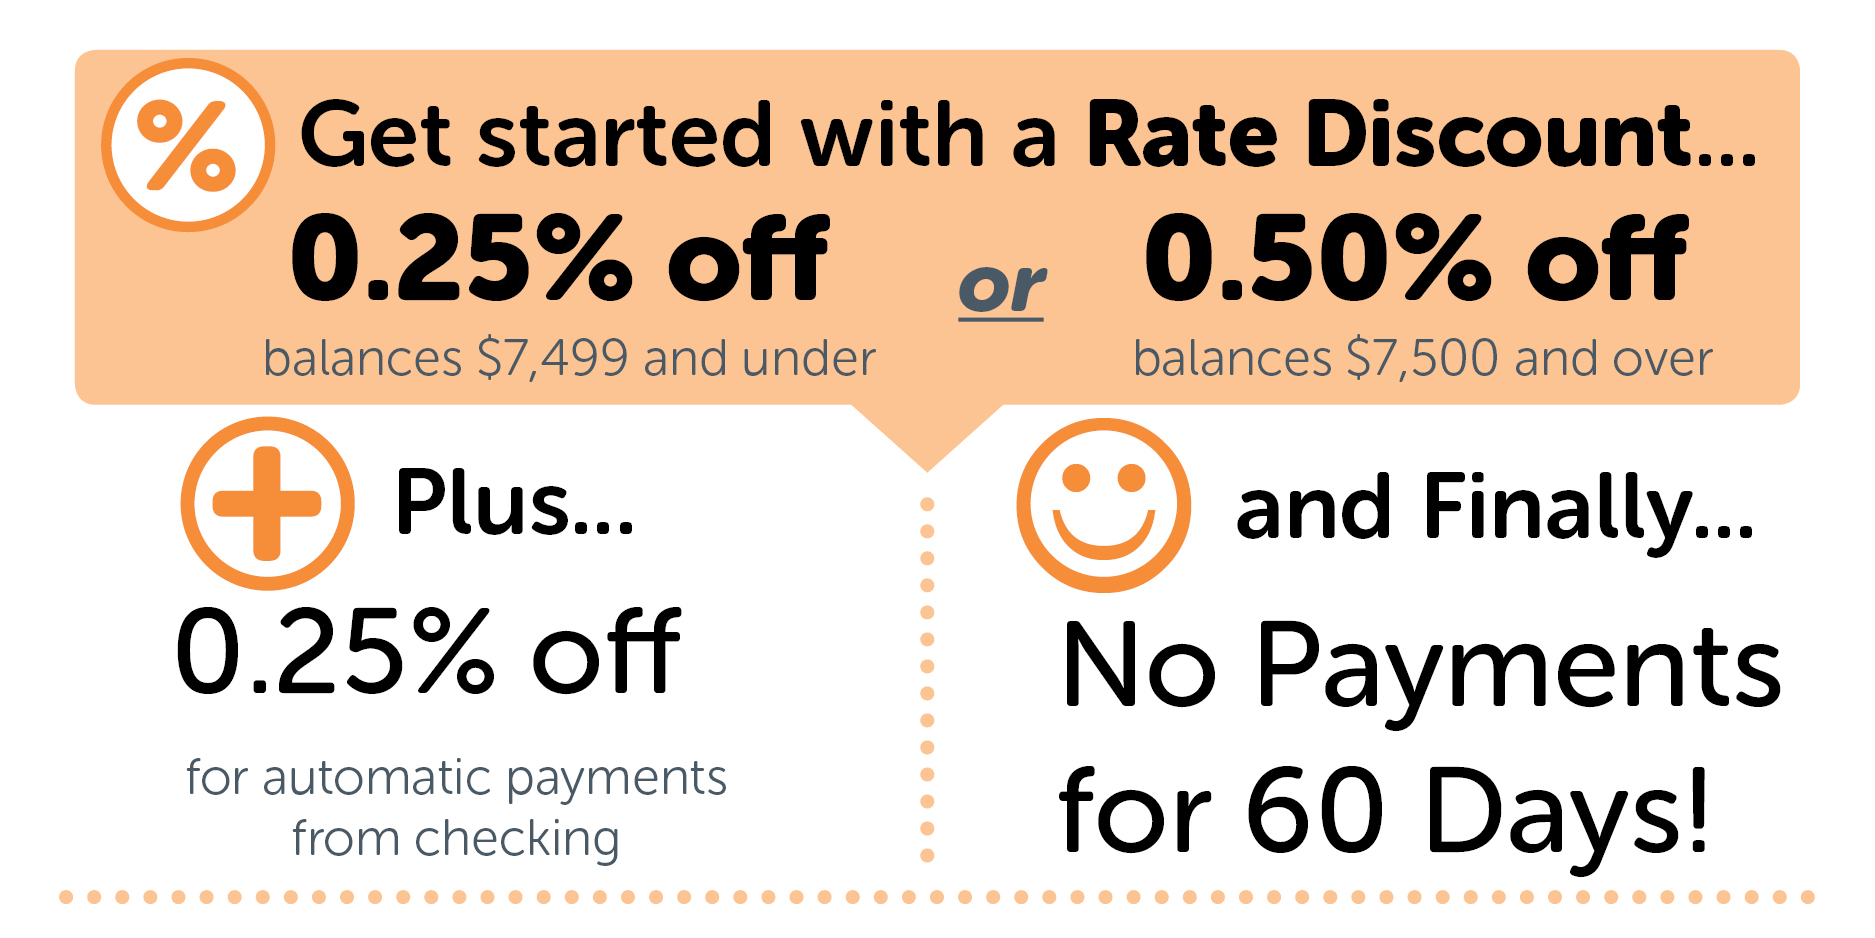 Get started with a Rate Discount of 0.25 percent off (for balances $7,499 and under) OR 0.50 percent off (for balances $7,500 and over). Plus an additional 0.25 percent off for automatic payments from checking and no payment for 60 days.